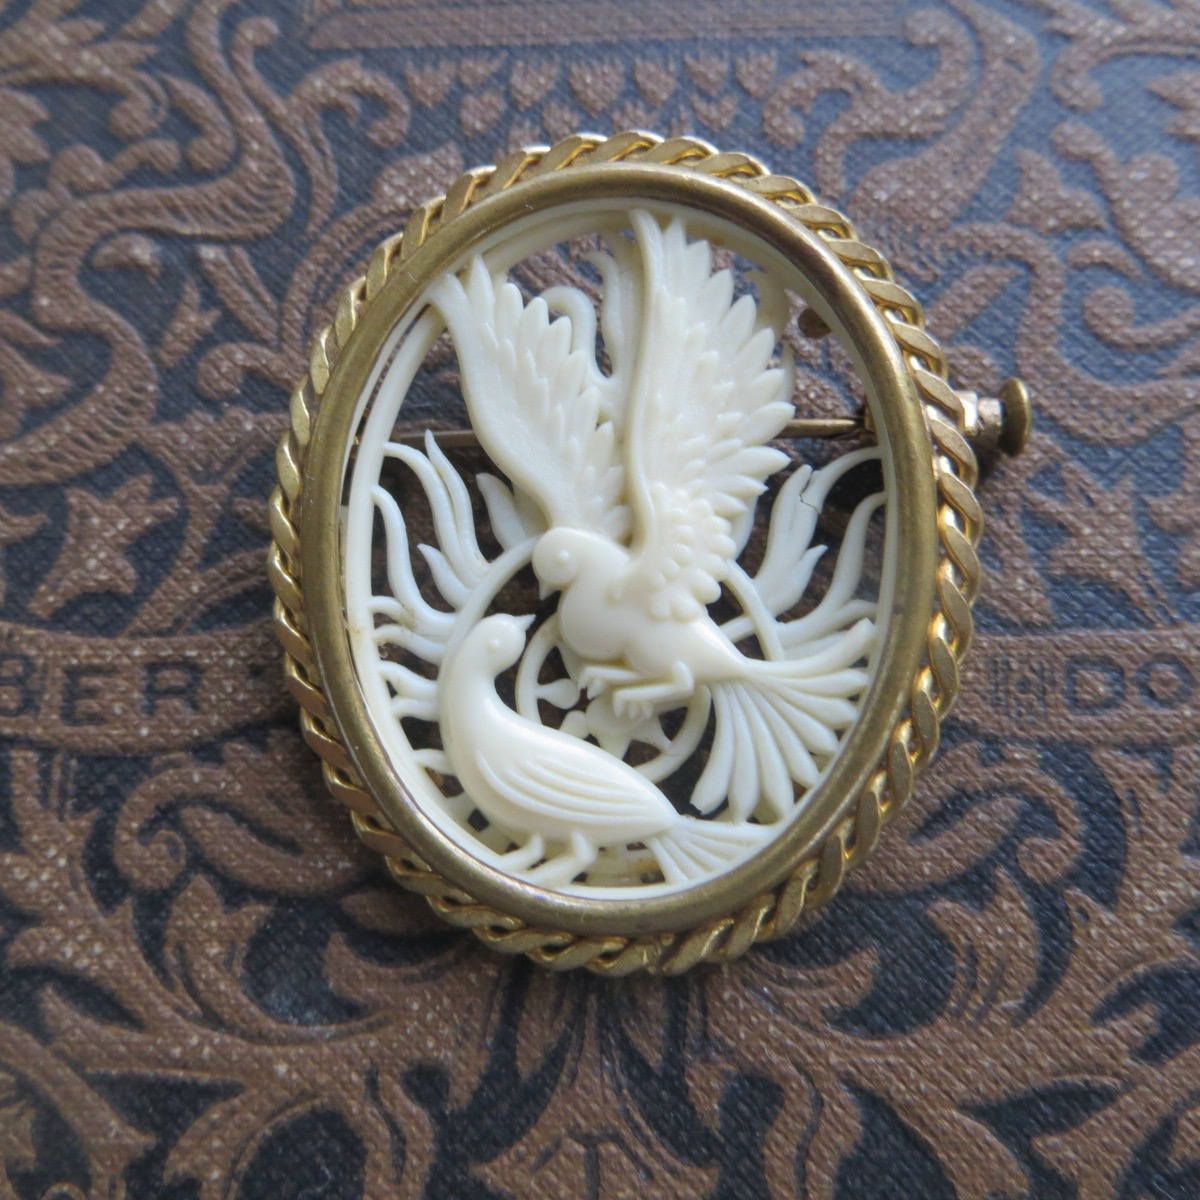 2ceb93ff23b Vintage Carved Celluloid Pin, Pair of Doves Brooch, Depose France Bird  Brooch, Vintage Bird Jewelry #carvedcelluloidbrooch #dovebrooch #dovepin ...